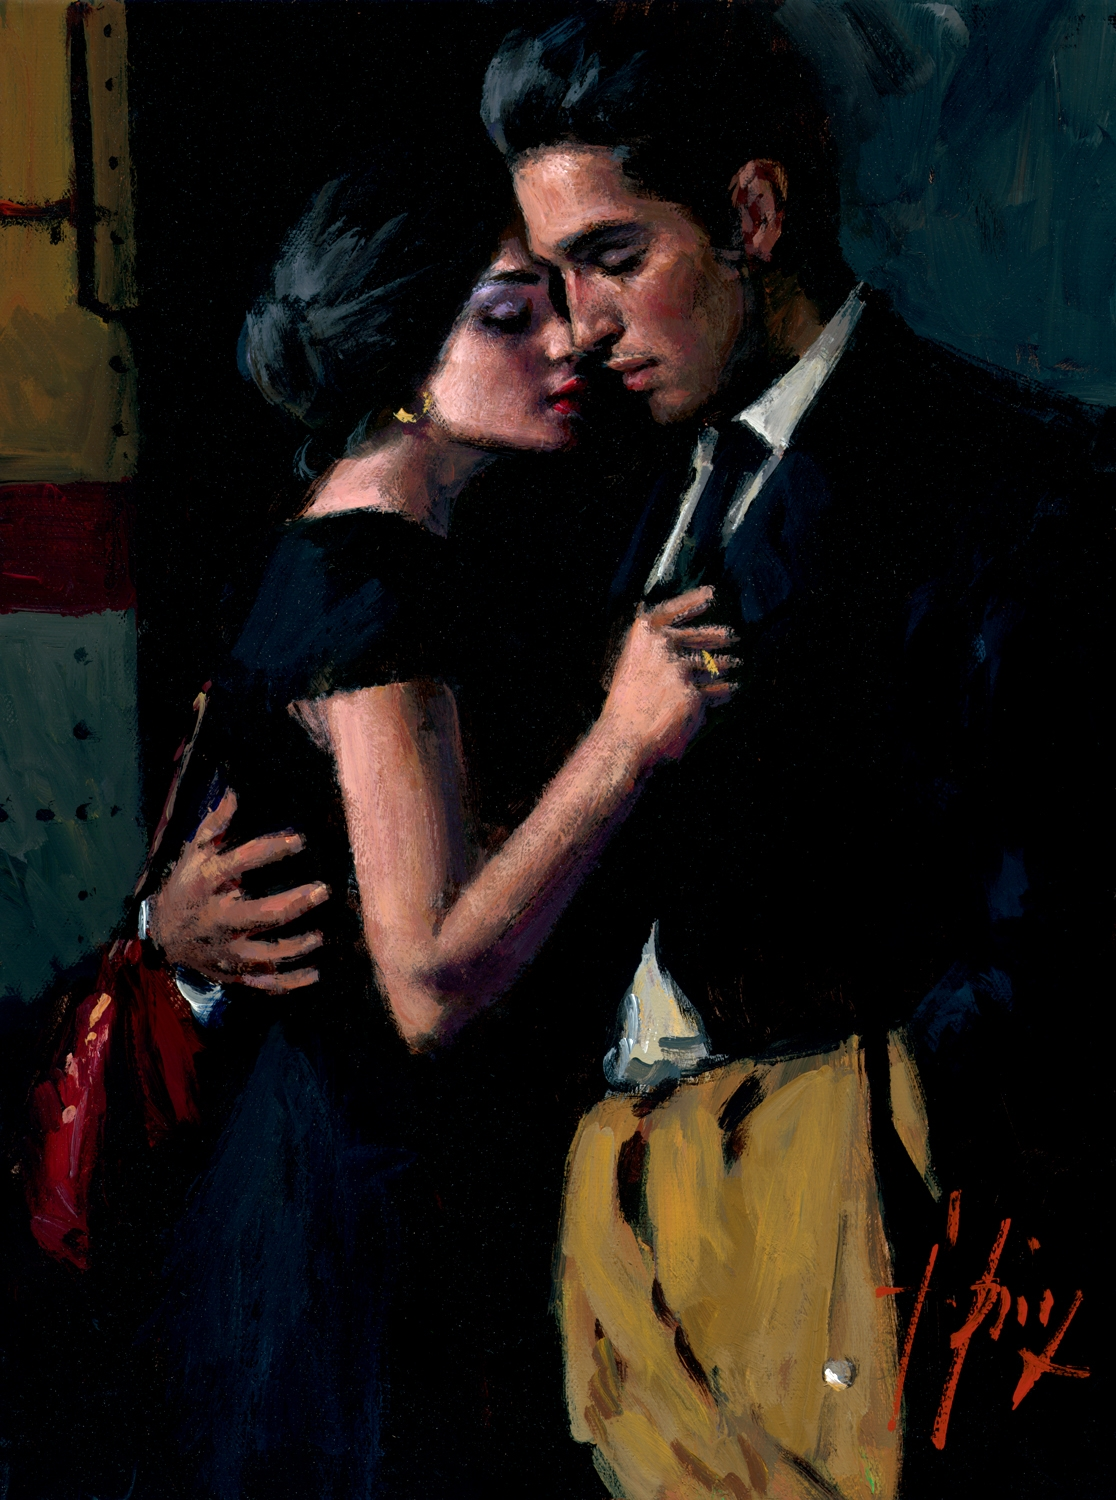 https://sep.yimg.com/ay/gallerydirectart/fabian-perez-handsigned-and-numbered-limited-edition-embellished-giclee-on-canvas-the-train-station-v-21.jpg